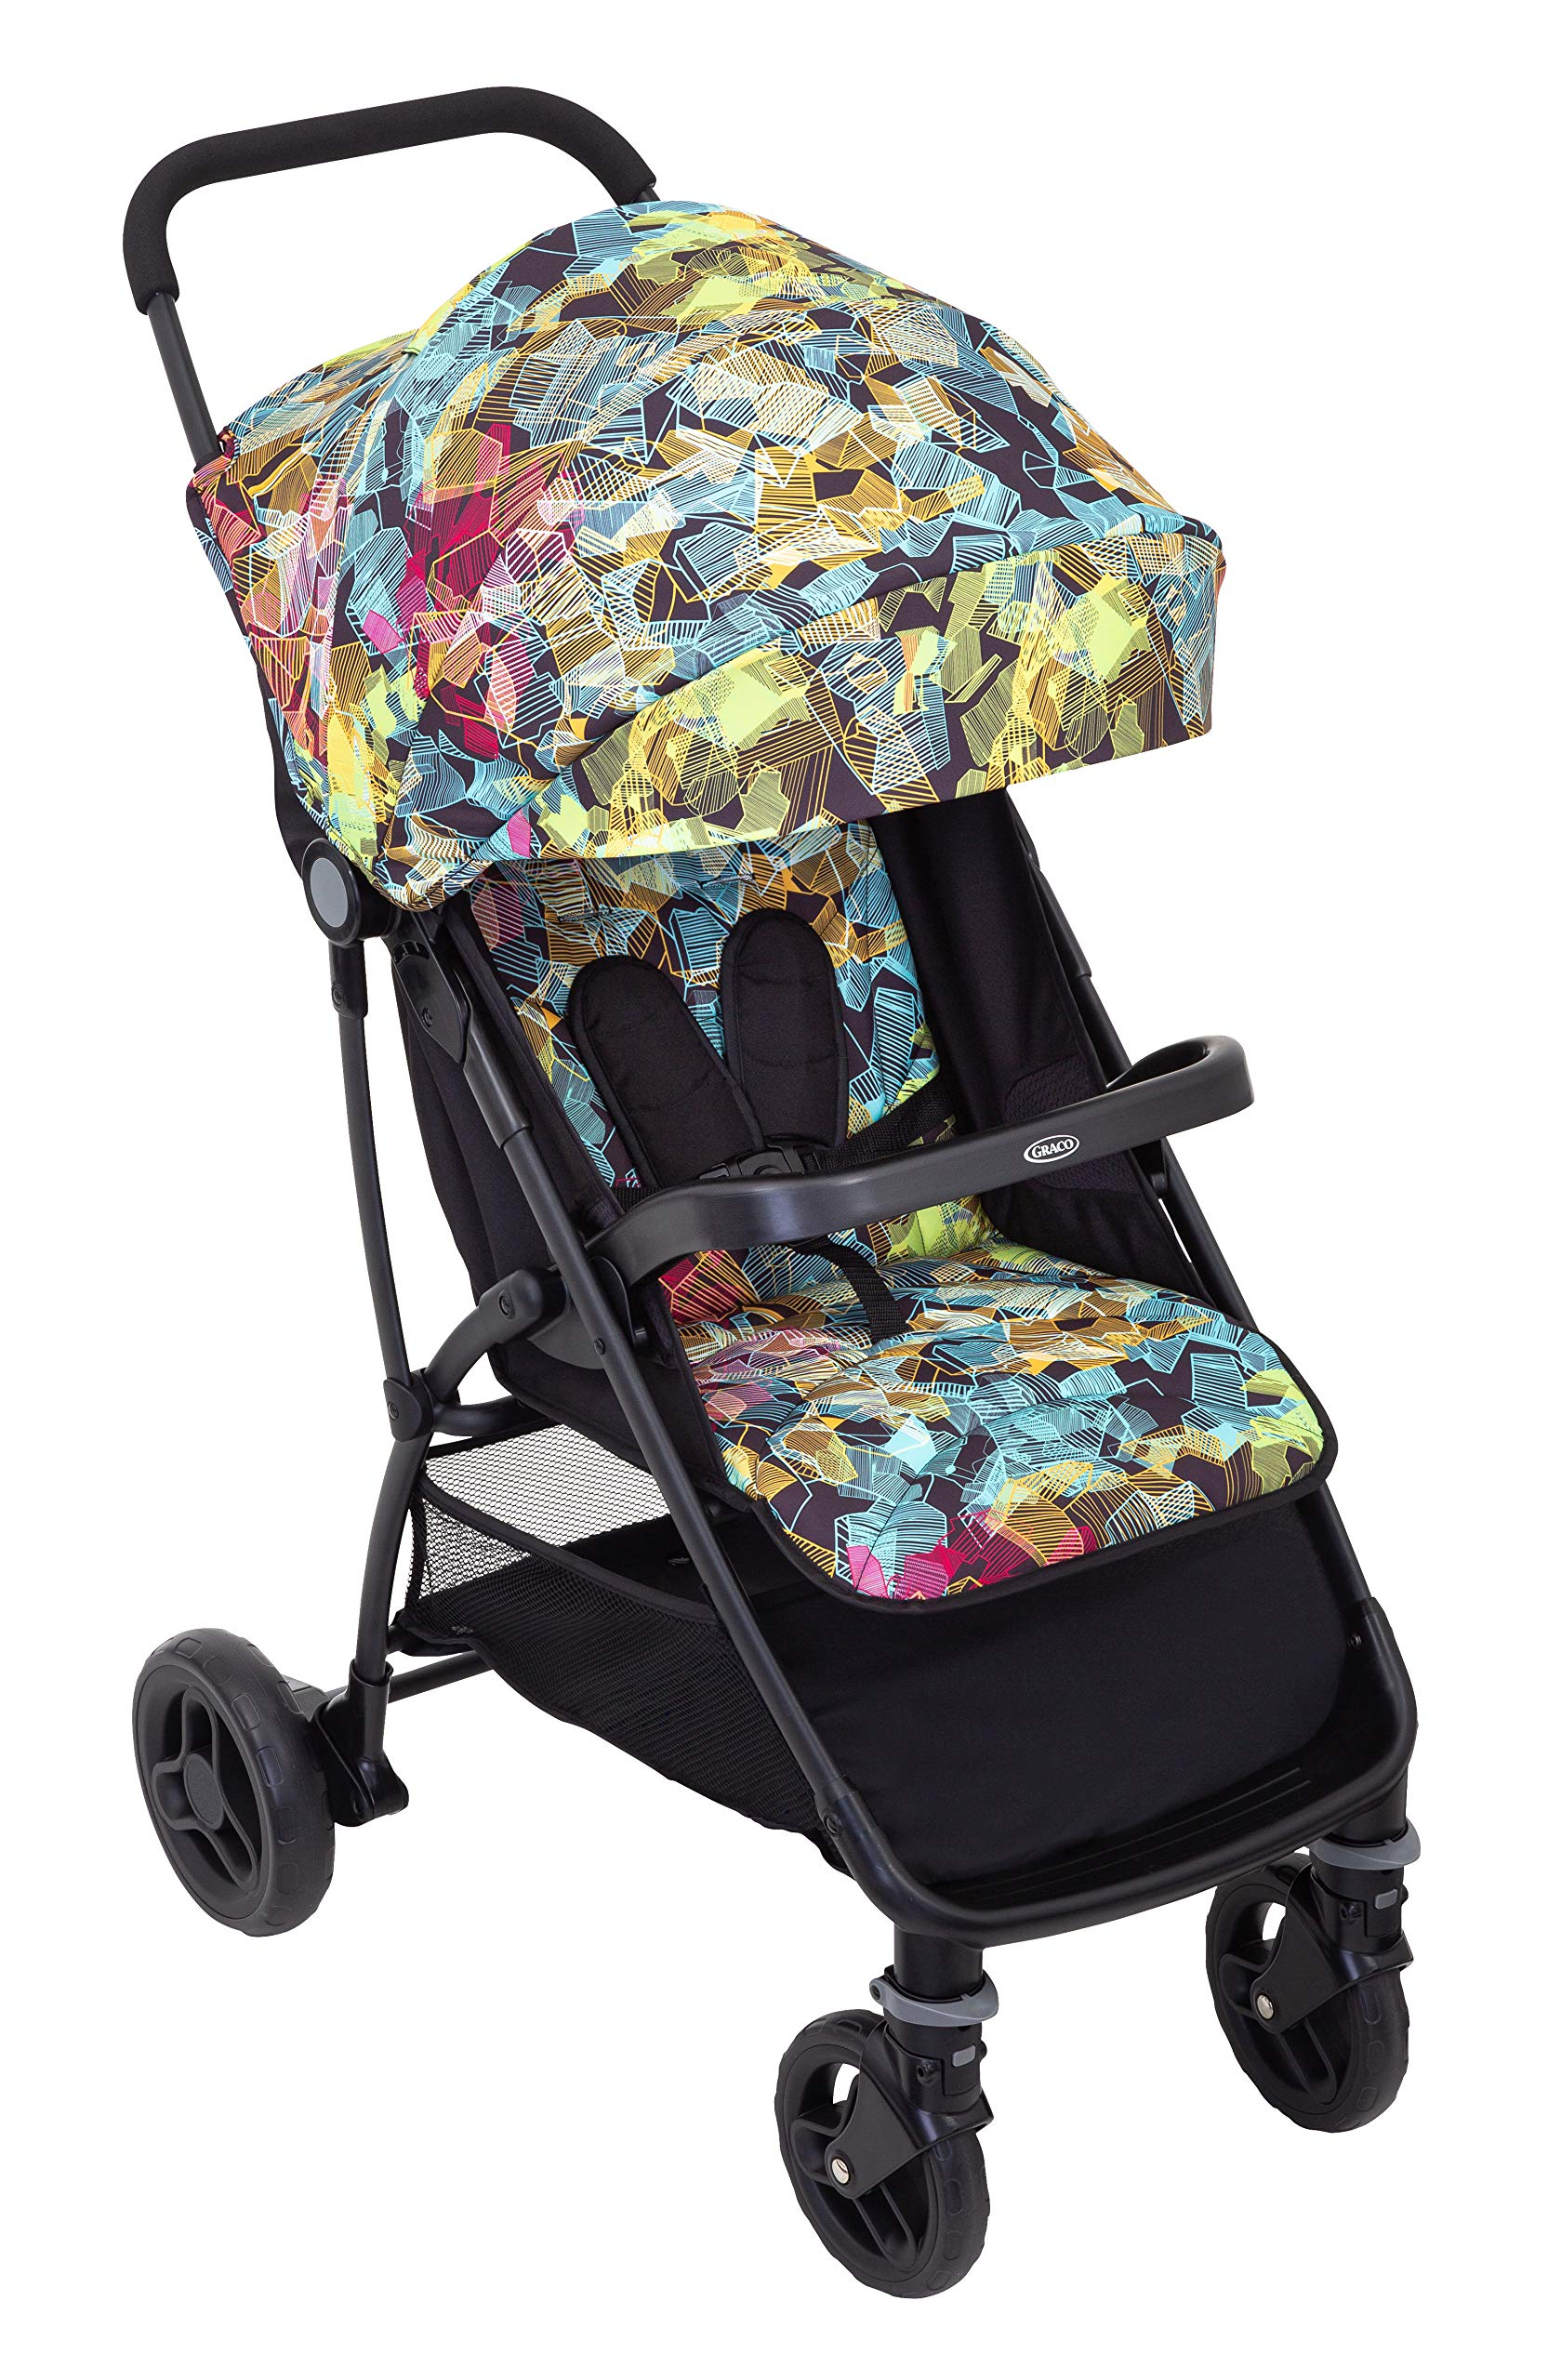 Graco Breaze Lite Stroller, Kaleidoscope Graco From birth to 3 years approx. (0-15kg) Lightweight at only 6.5kg Click connect travel system compatible with graco snugride/snugessentials isize infant car seats 2